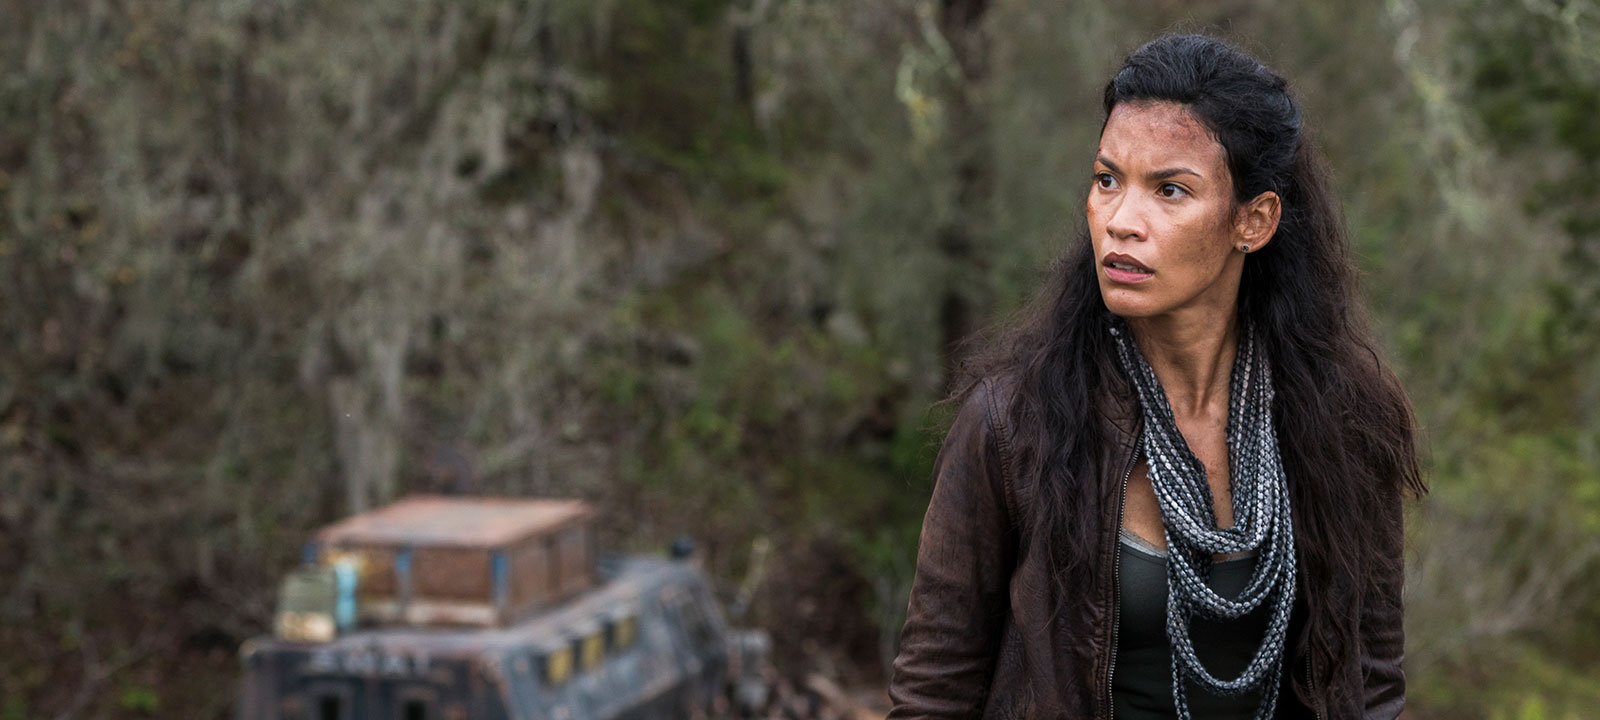 fear-the-walking-dead-episode-403-luciana-garcia-800×600-interview